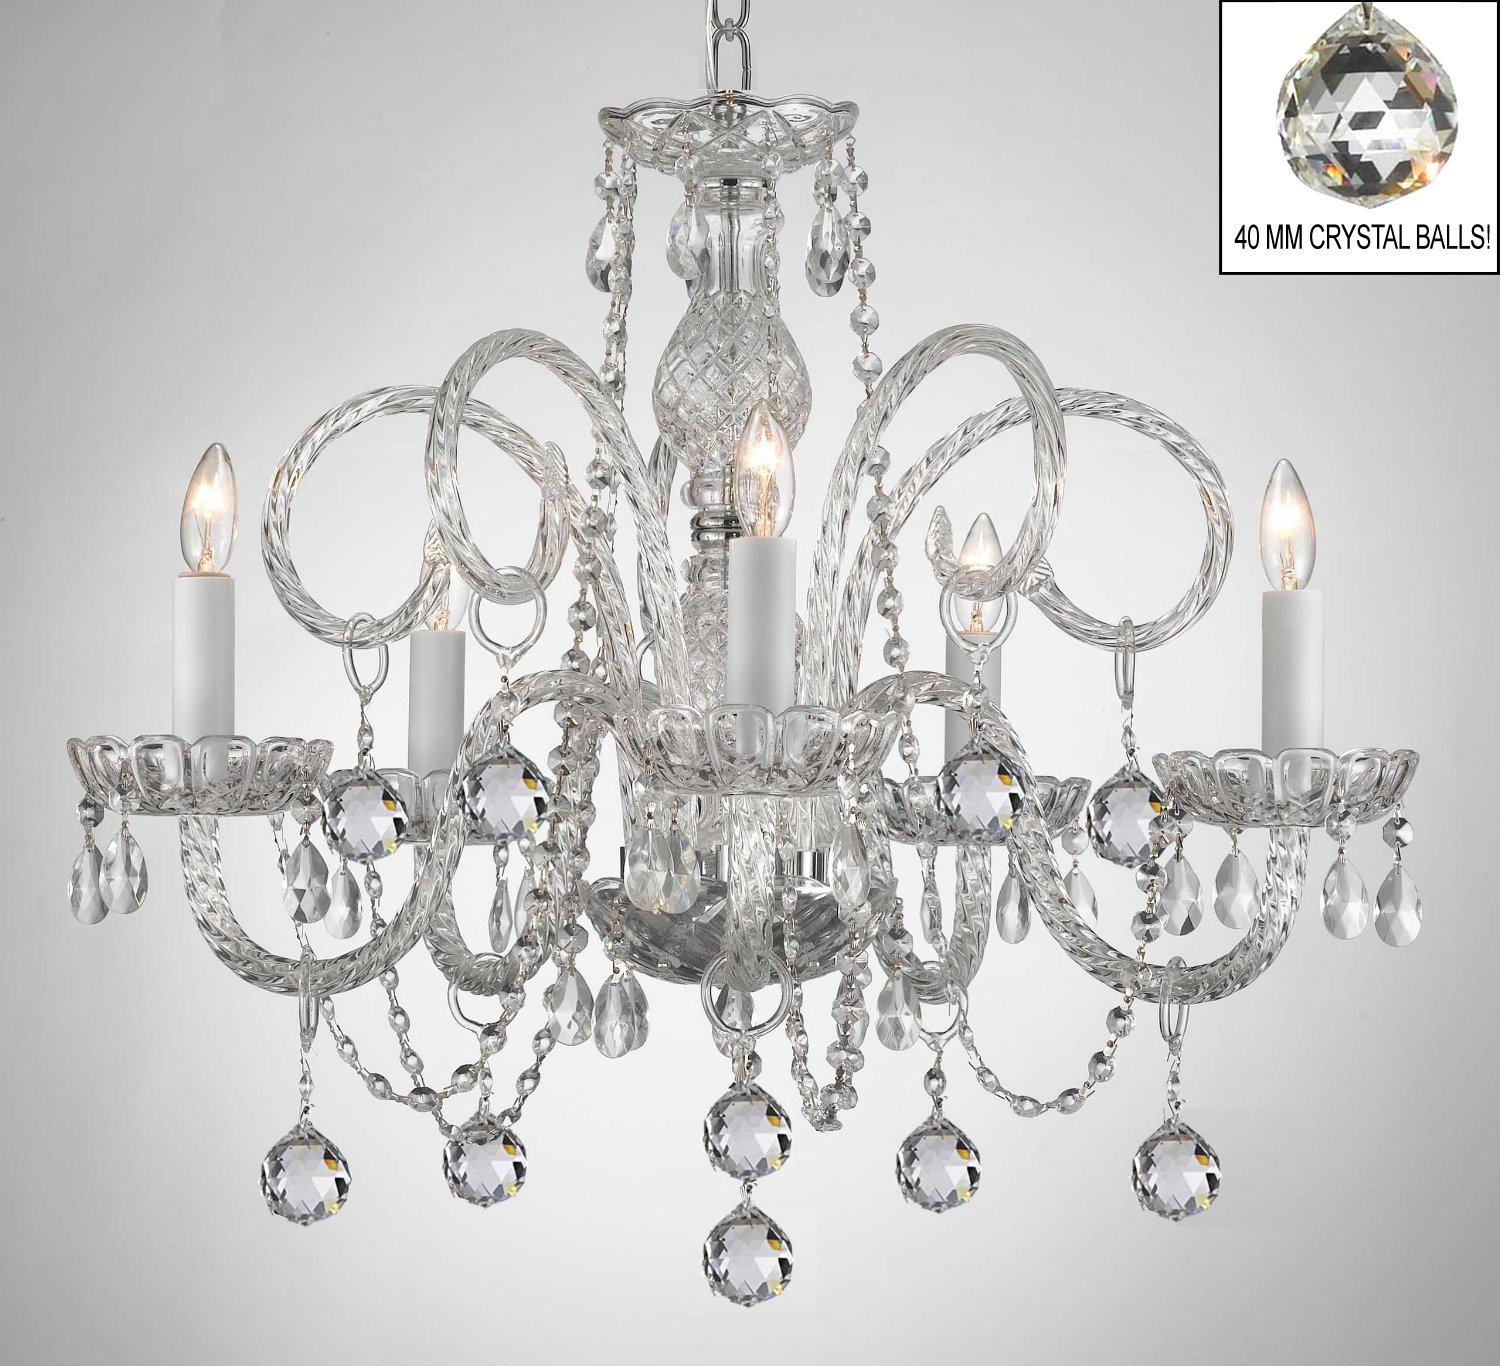 Swarovski Crystal Dollhouse Chandelier: Swarovski Crystal Trimmed Chandelier! All Crystal